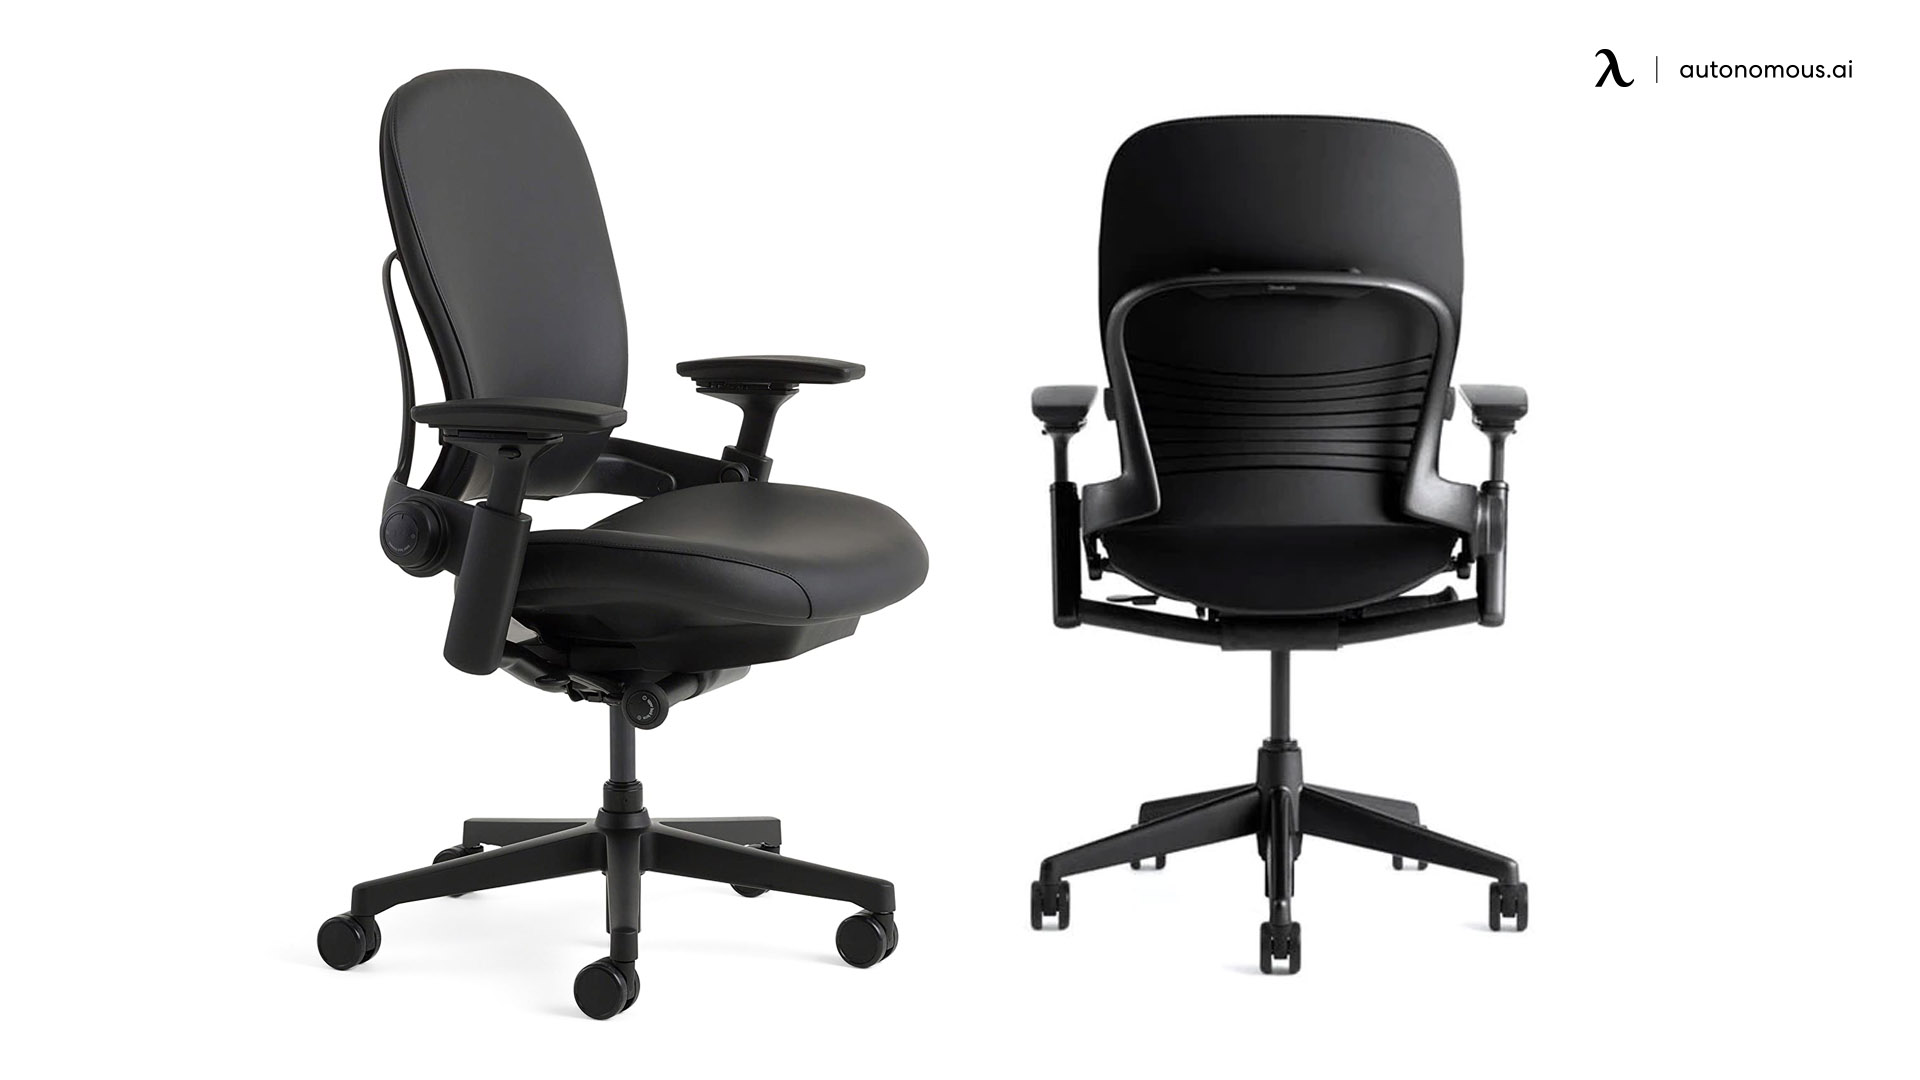 Leap Executive Chair from Steelcase